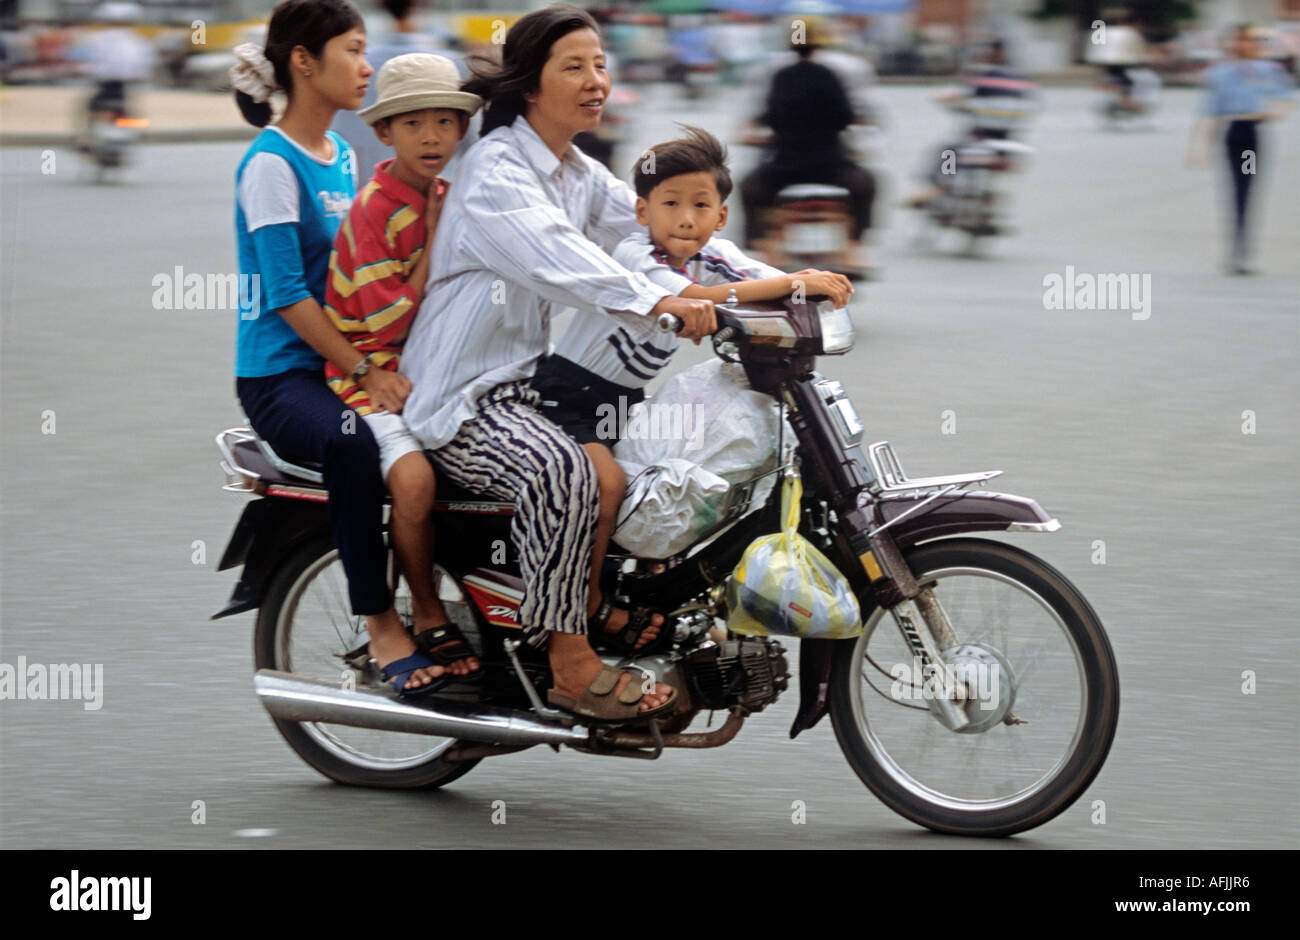 motorcycle family pics  Four Family On Scooter Motorcycle Stock Photos